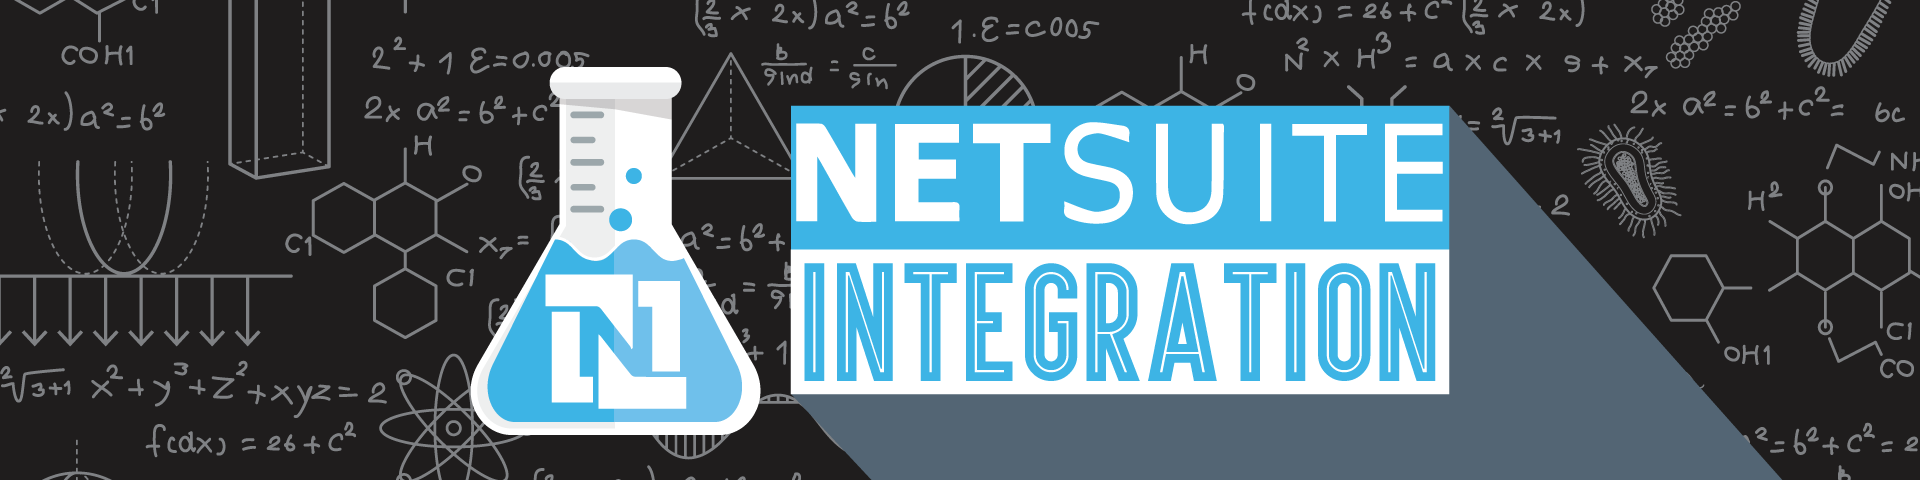 netsuite-blog-banner.png